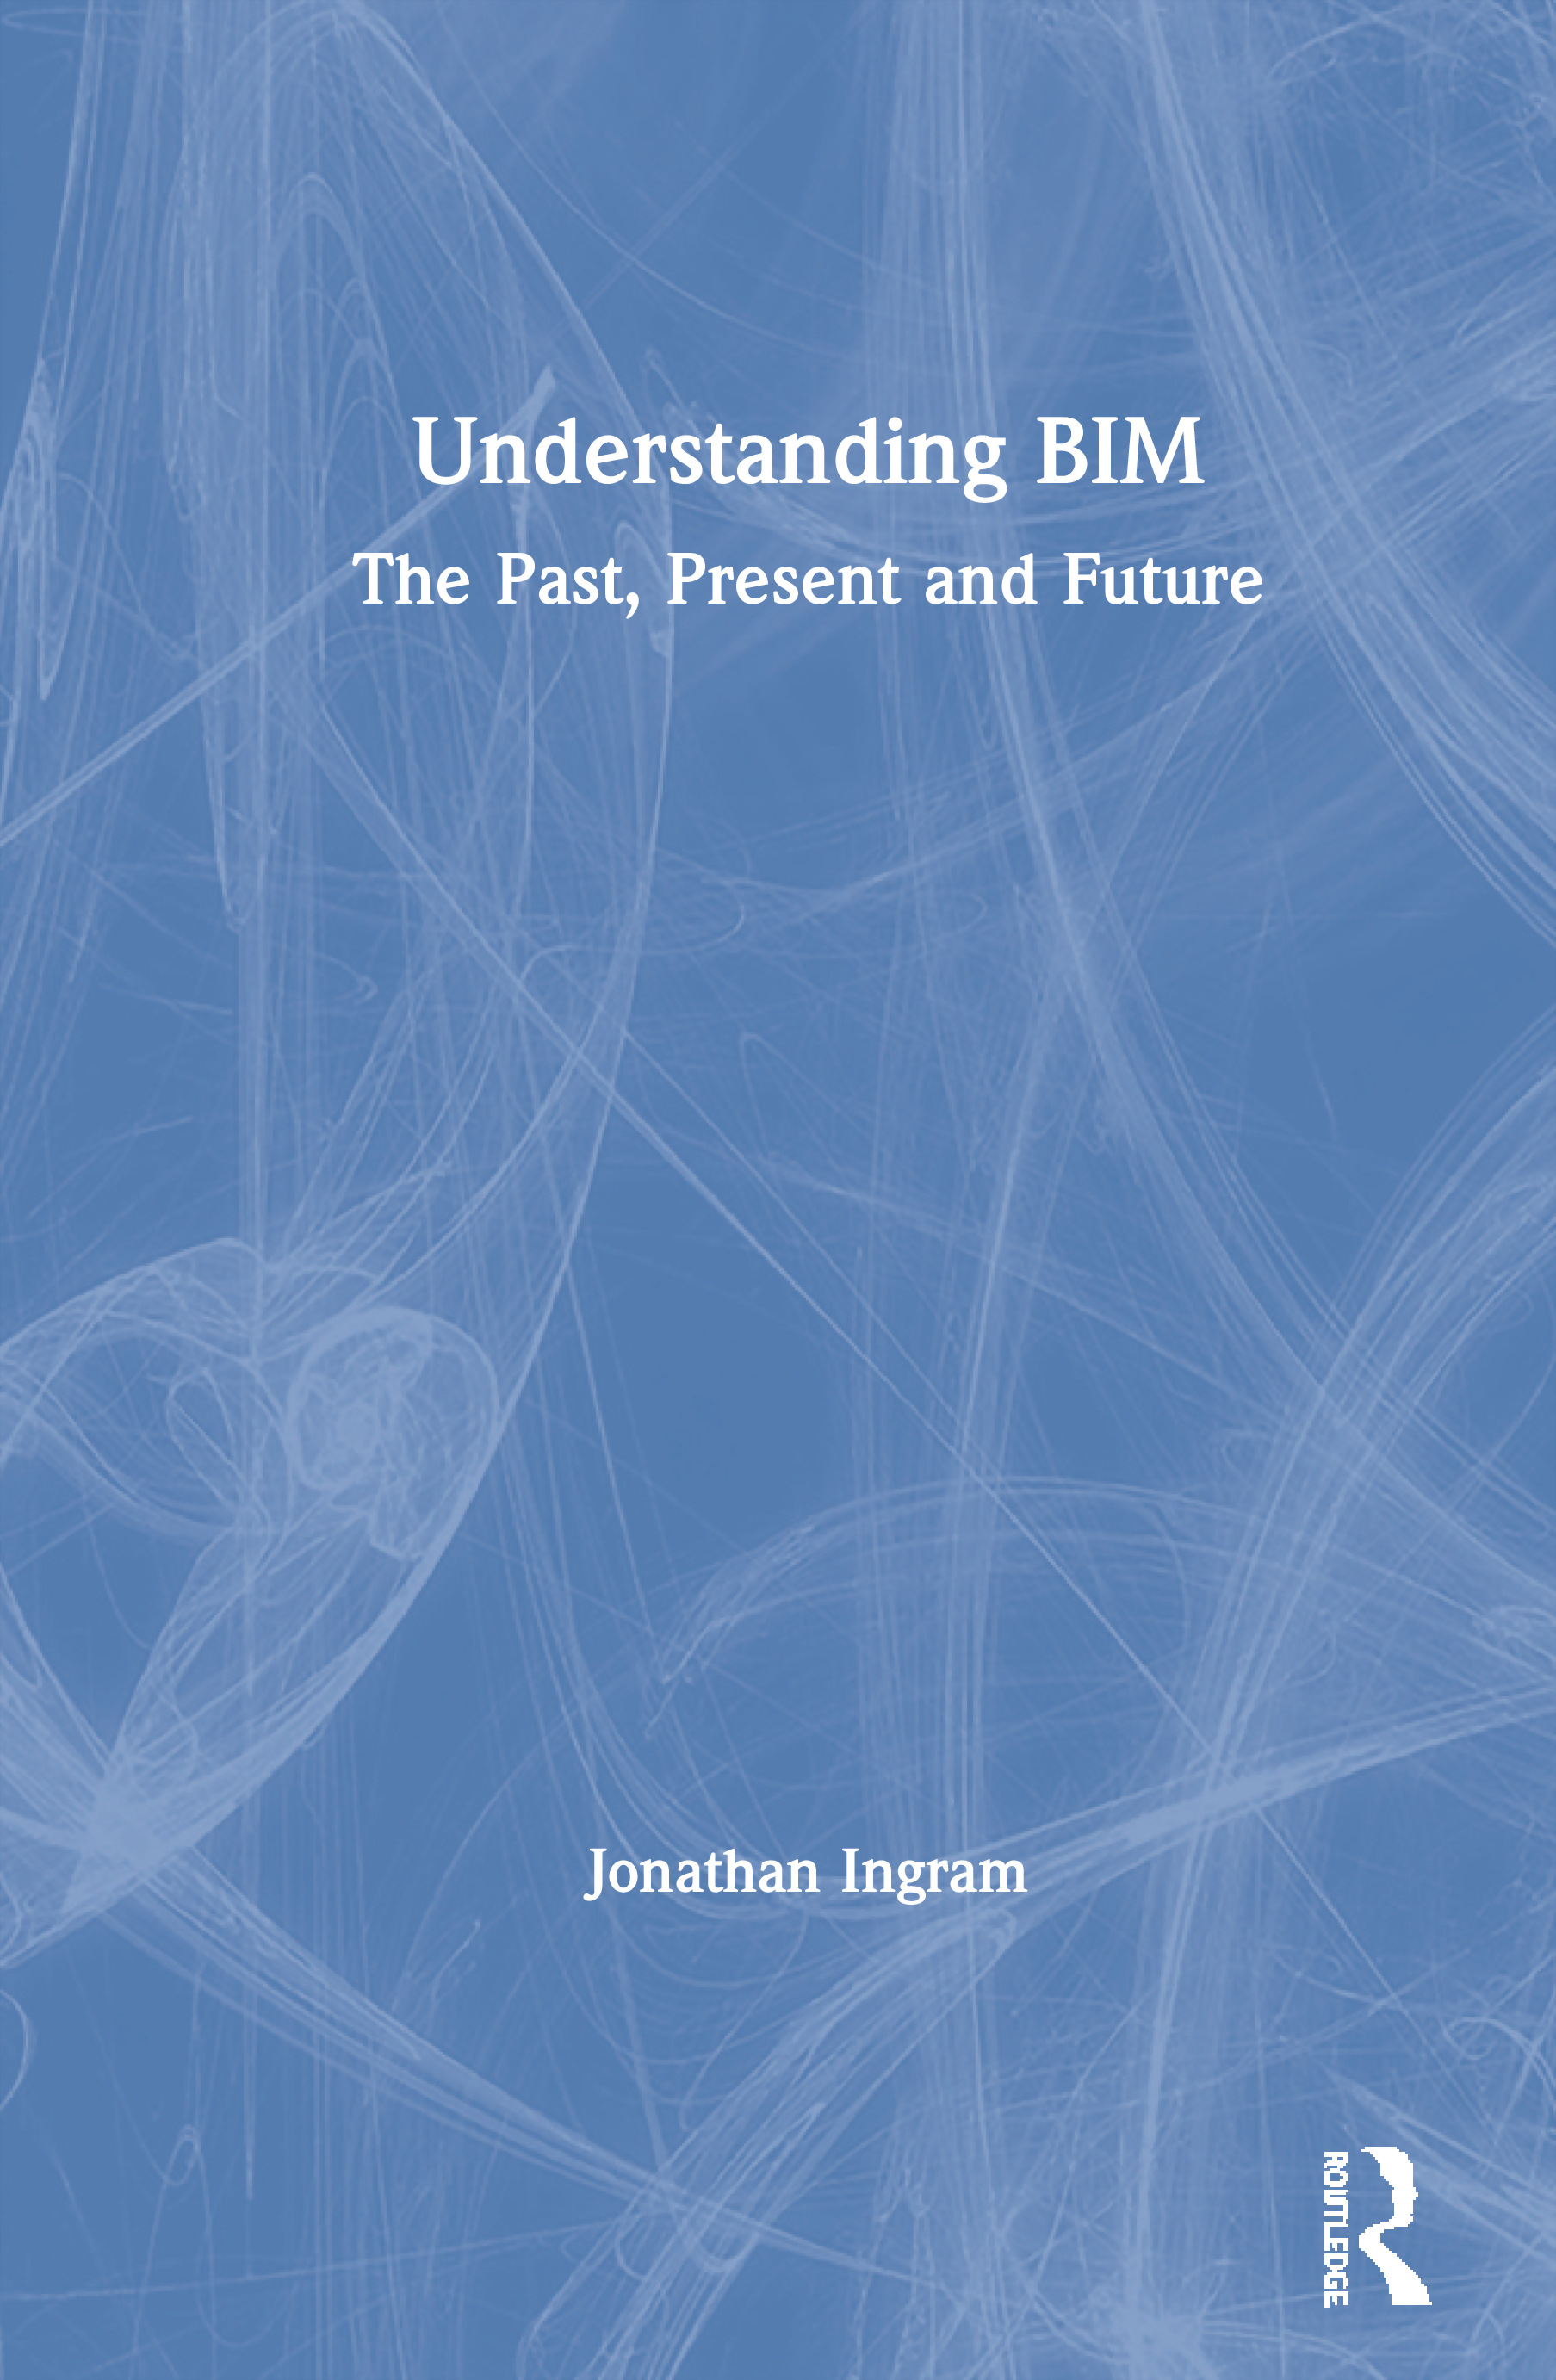 Understanding BIM: The Past, Present and Future book cover